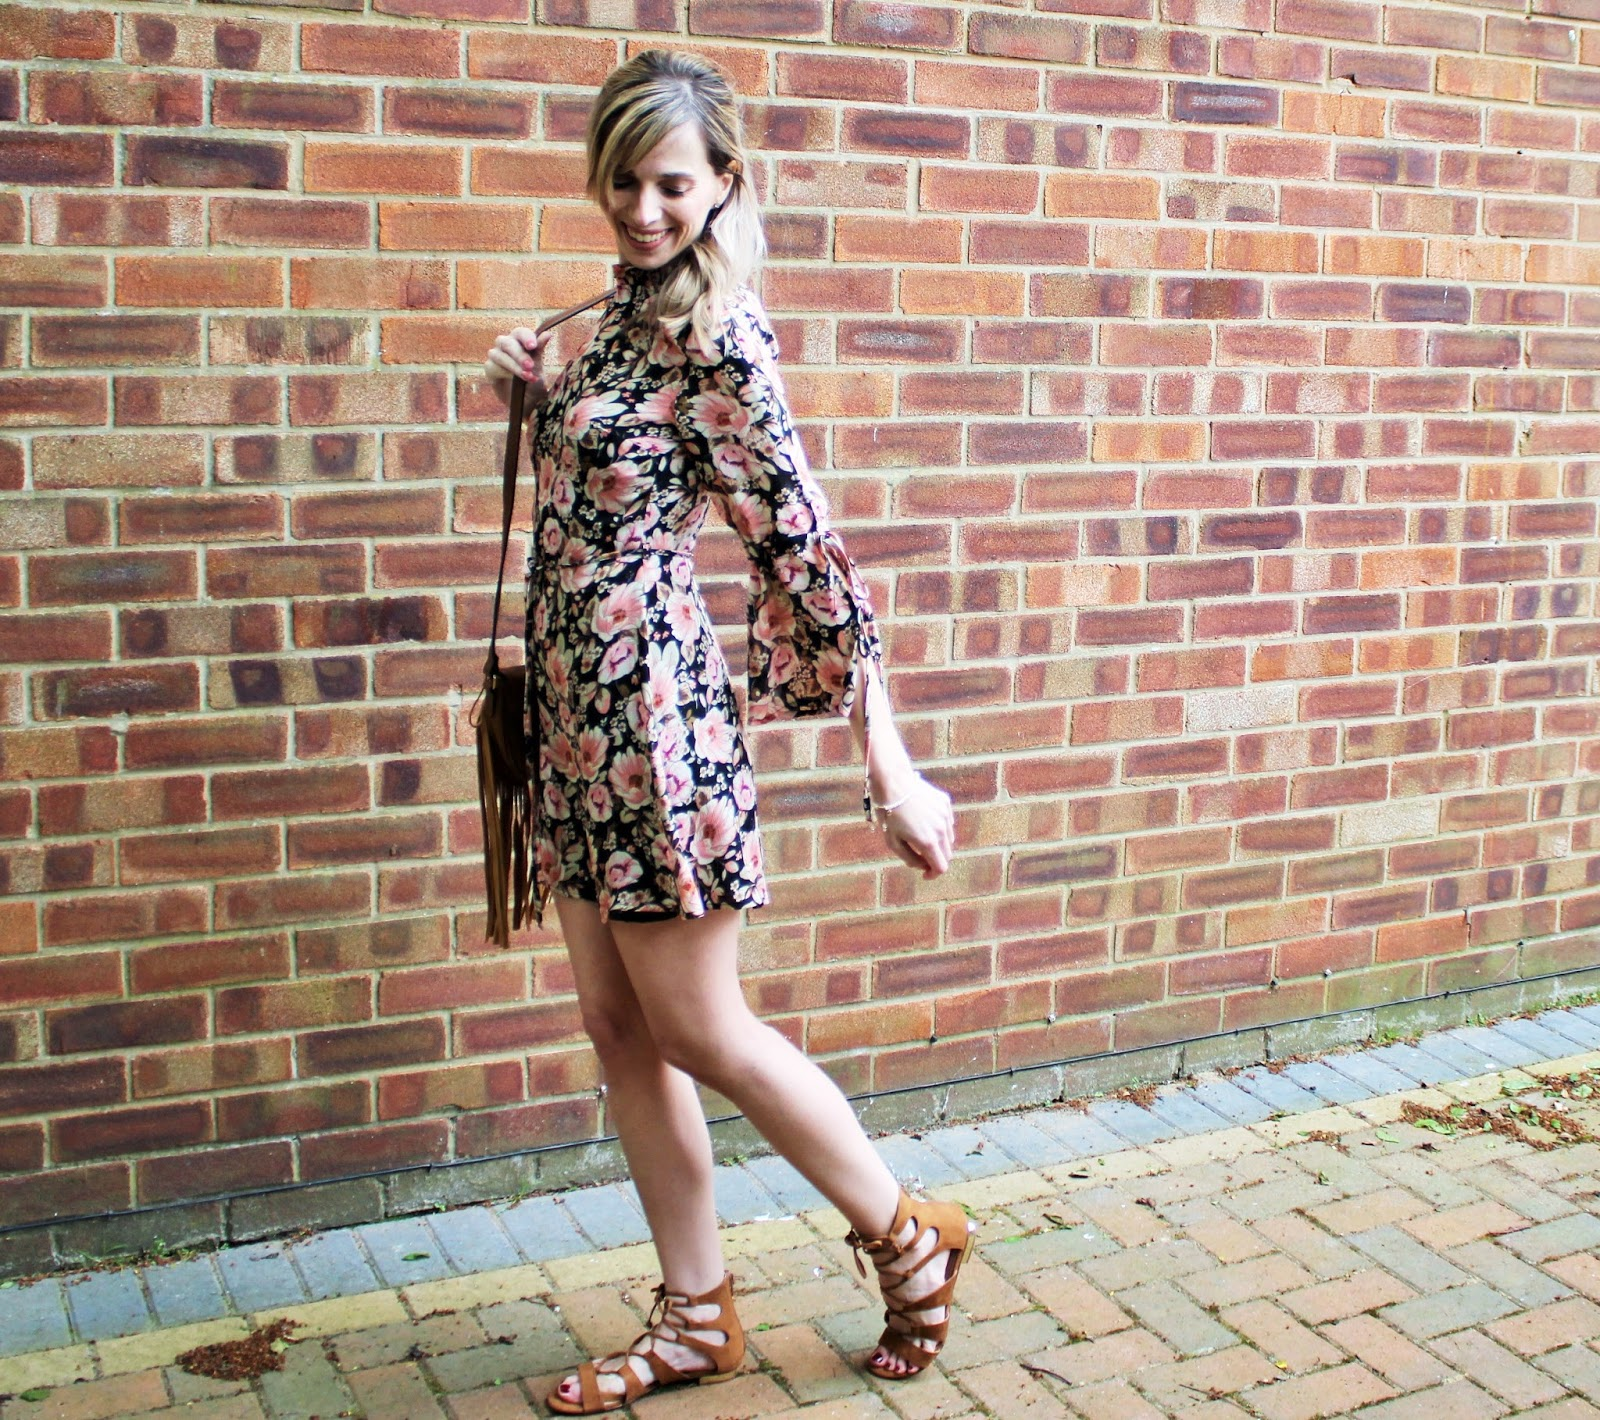 OOTD featuring a floral dress from Topshop and beaded bracelet from Lola Rose - 5